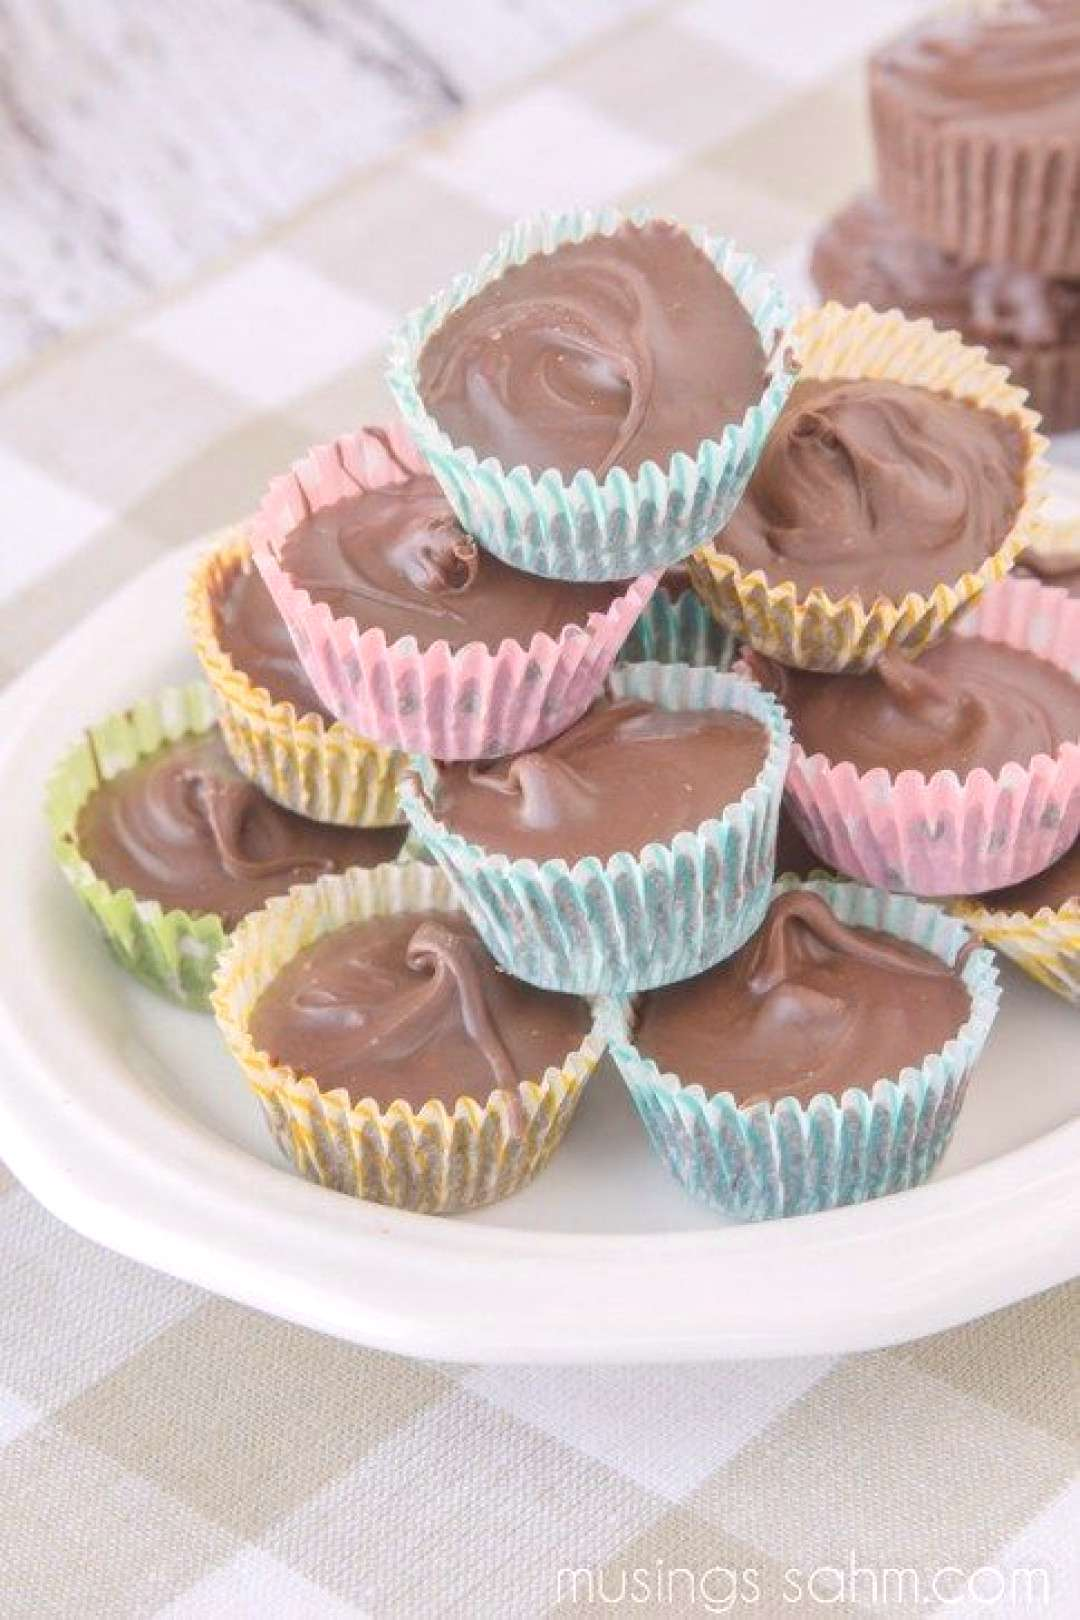 Homemade Peanut Butter Cups | The easy no-bake recipe